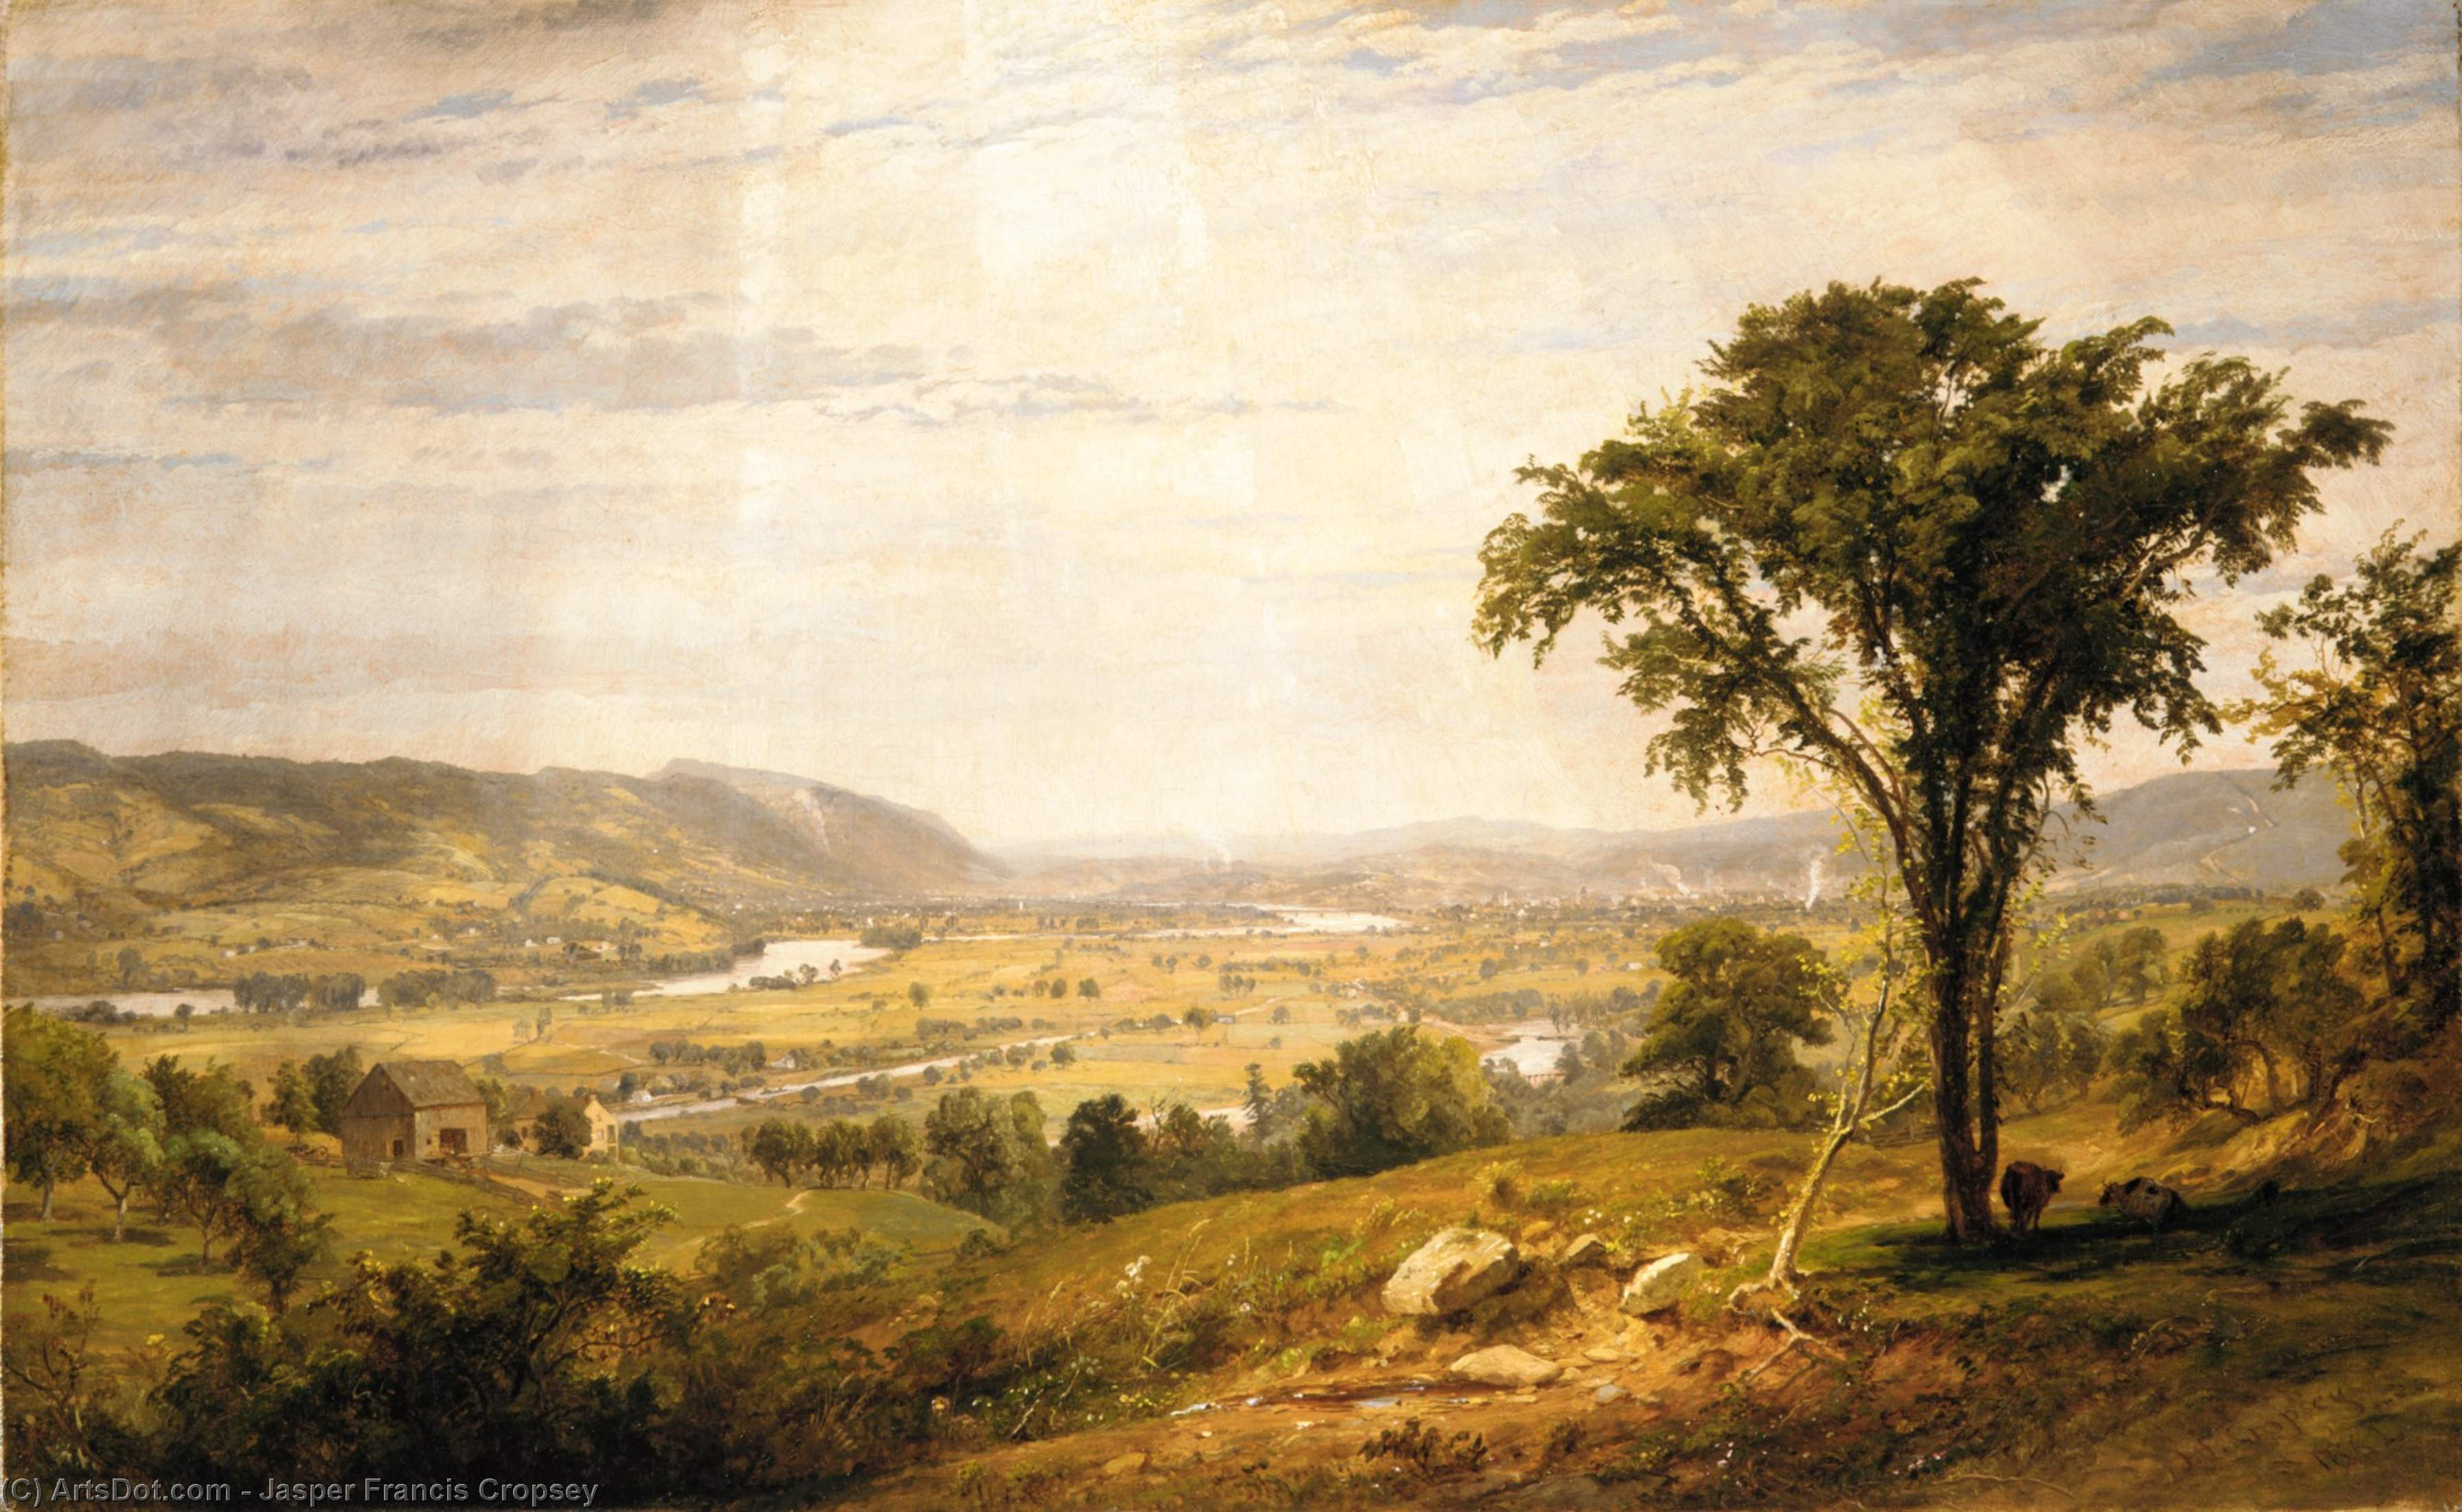 wyoming vallée pennsylvanie de Jasper Francis Cropsey (1823-1900, United States)